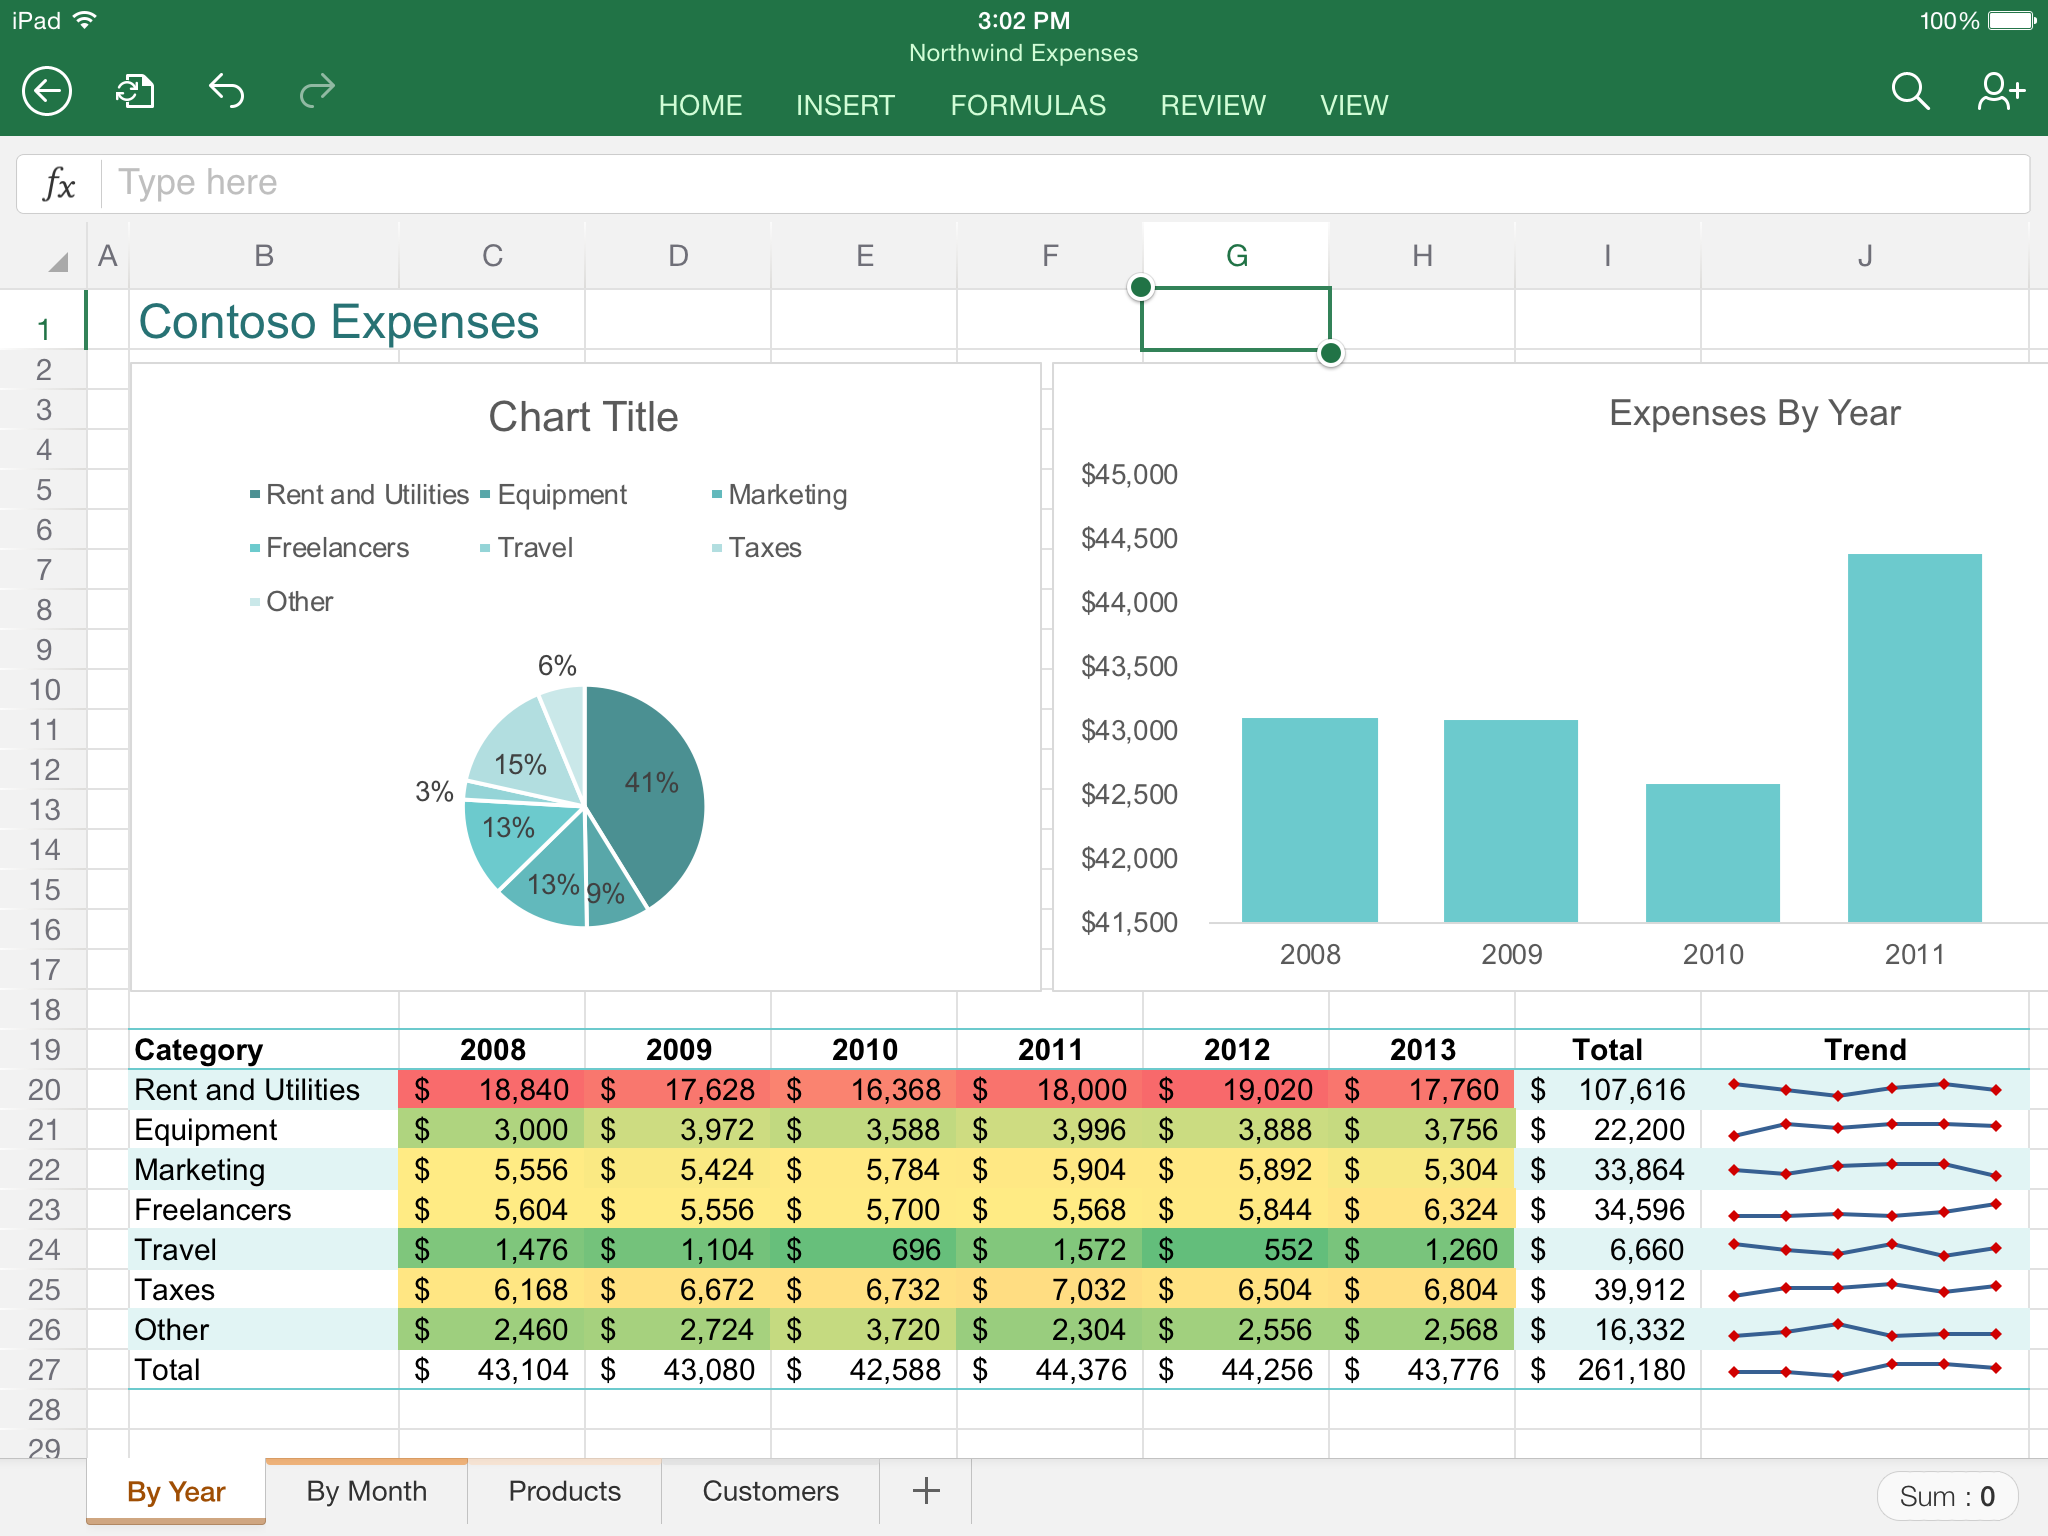 Ediblewildsus  Unique App Highlight Excel  Mobile Digital Now With Great Excel In Action With Beauteous Offset Excel Vba Also Excel Organizational Chart In Addition How To Index In Excel And Linking Excel Workbooks As Well As Excel Separate Names Additionally Column Excel Definition From Youstonybrookedu With Ediblewildsus  Great App Highlight Excel  Mobile Digital Now With Beauteous Excel In Action And Unique Offset Excel Vba Also Excel Organizational Chart In Addition How To Index In Excel From Youstonybrookedu